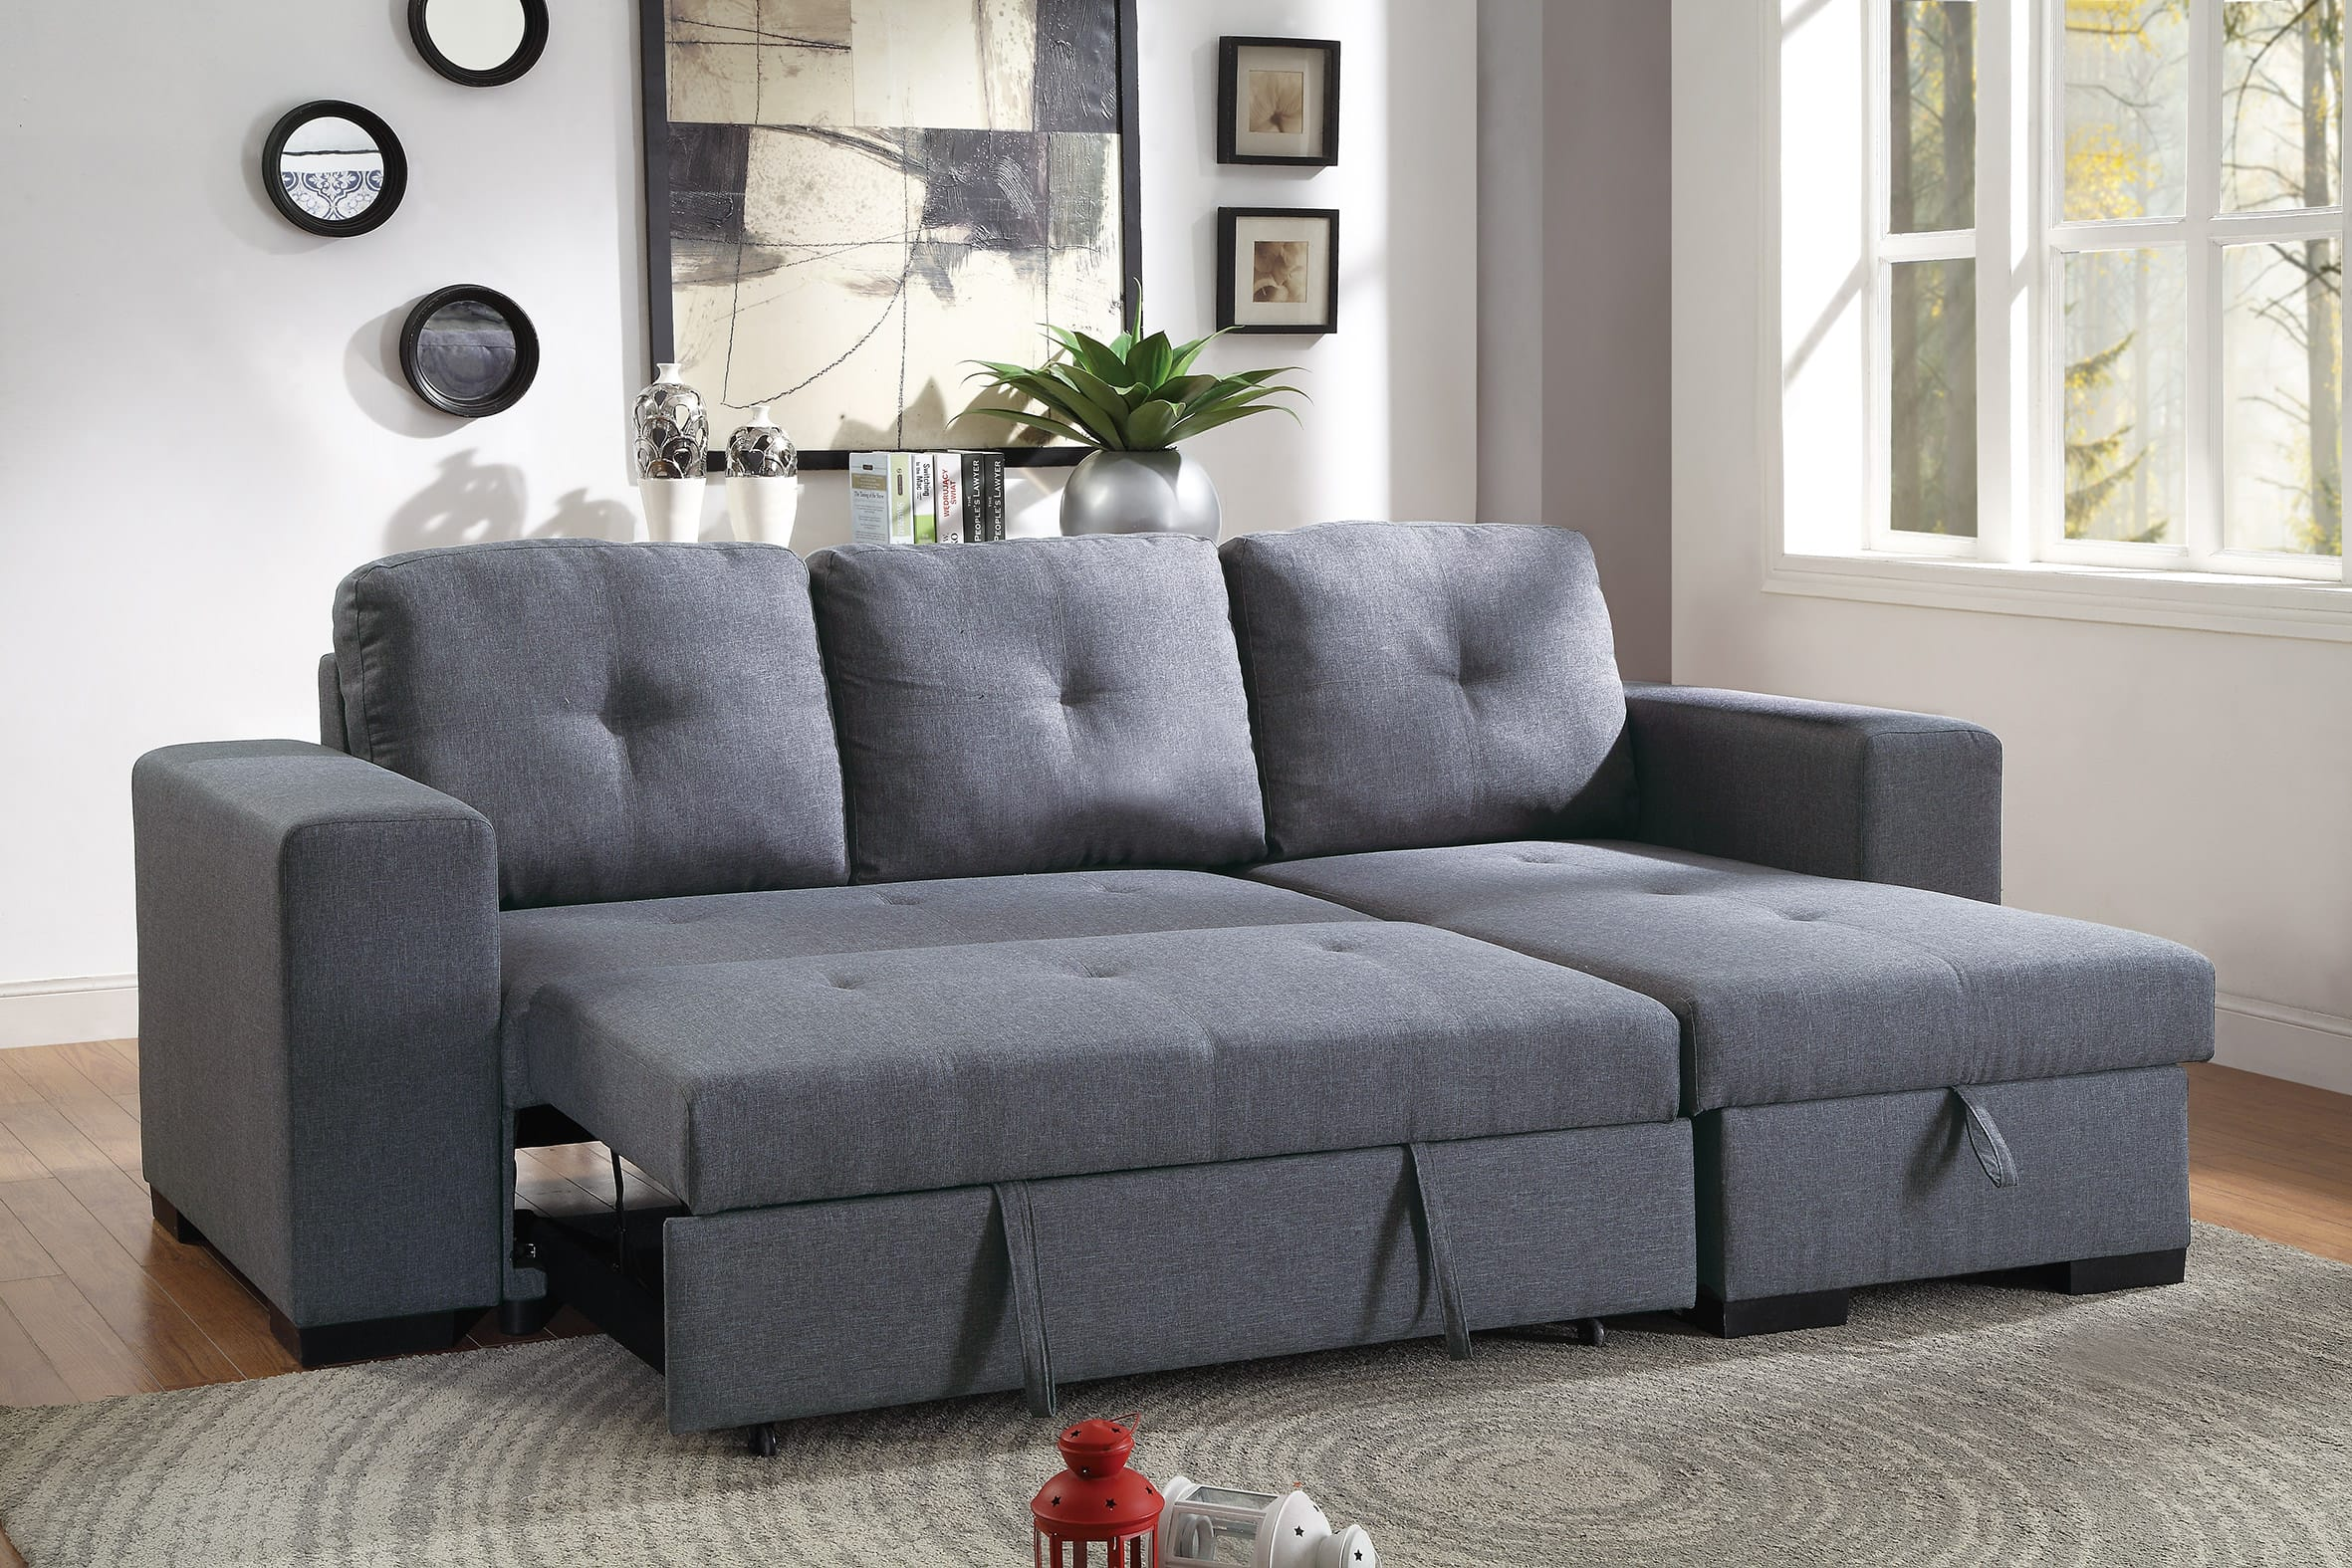 F6910 Blue Gray Convertible Sectional Sofa Set by Poundex